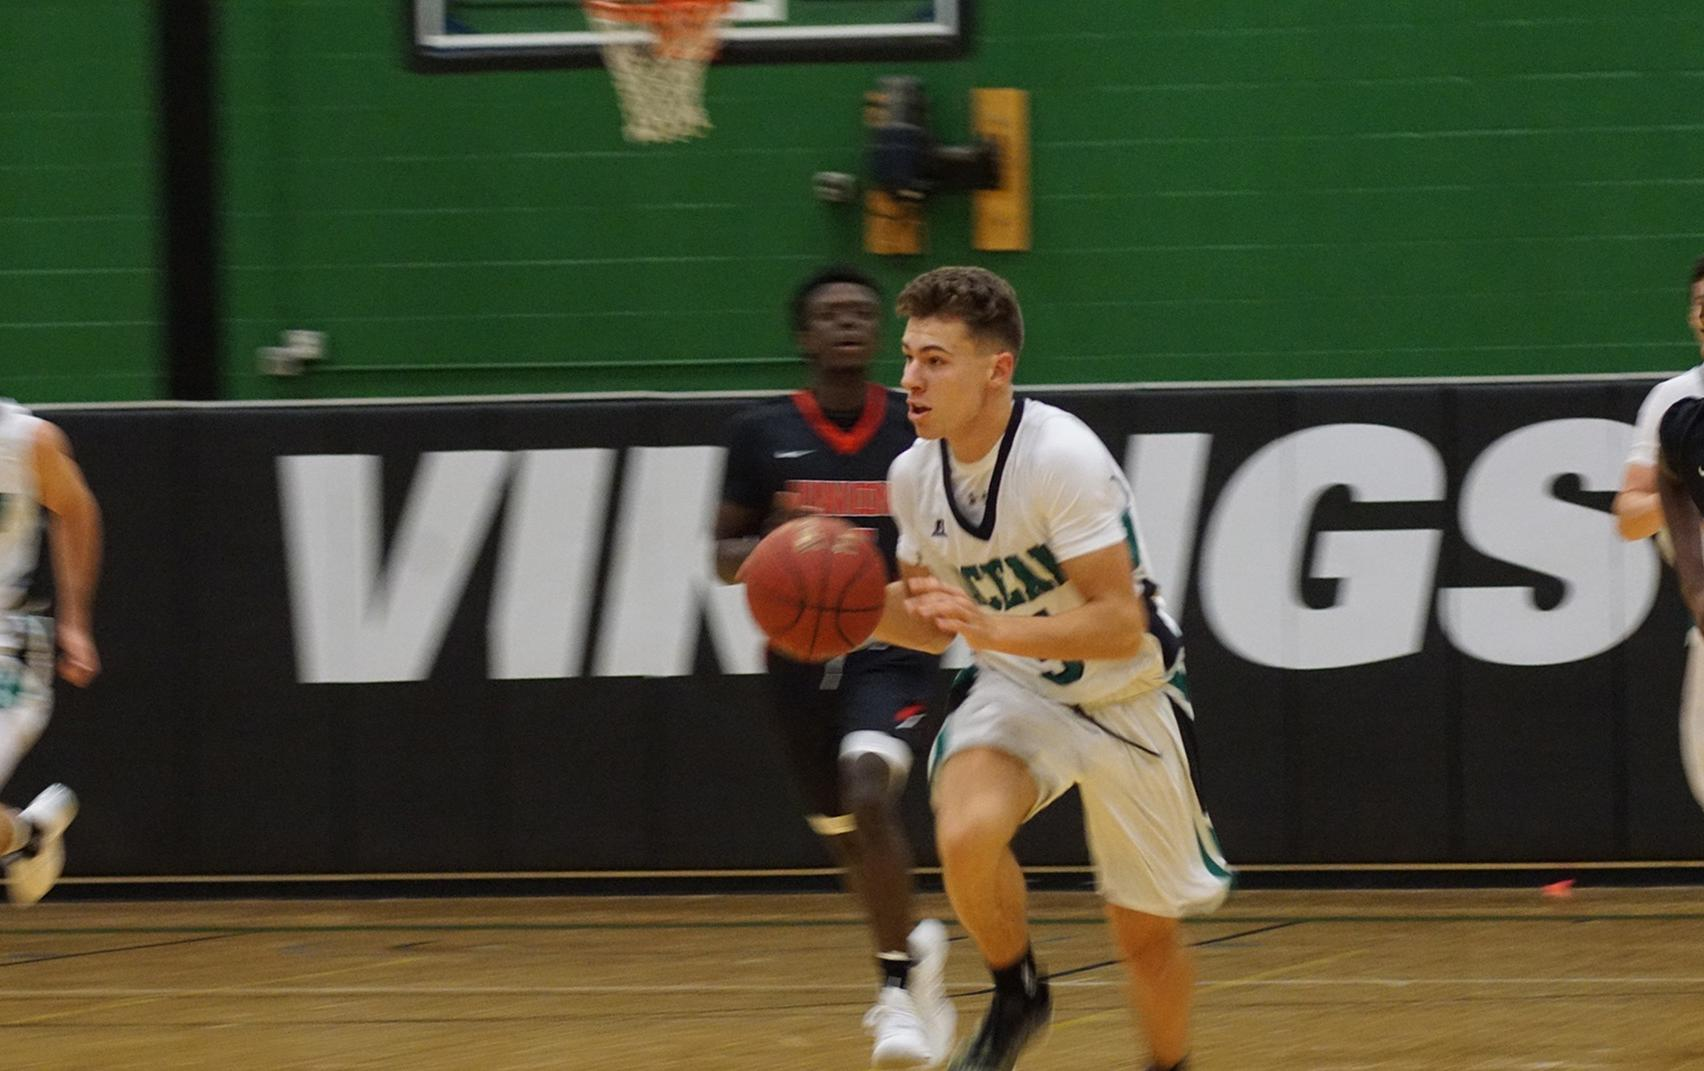 O'Donnell Drops 22 as Ocean Falls to Camden, 81-73